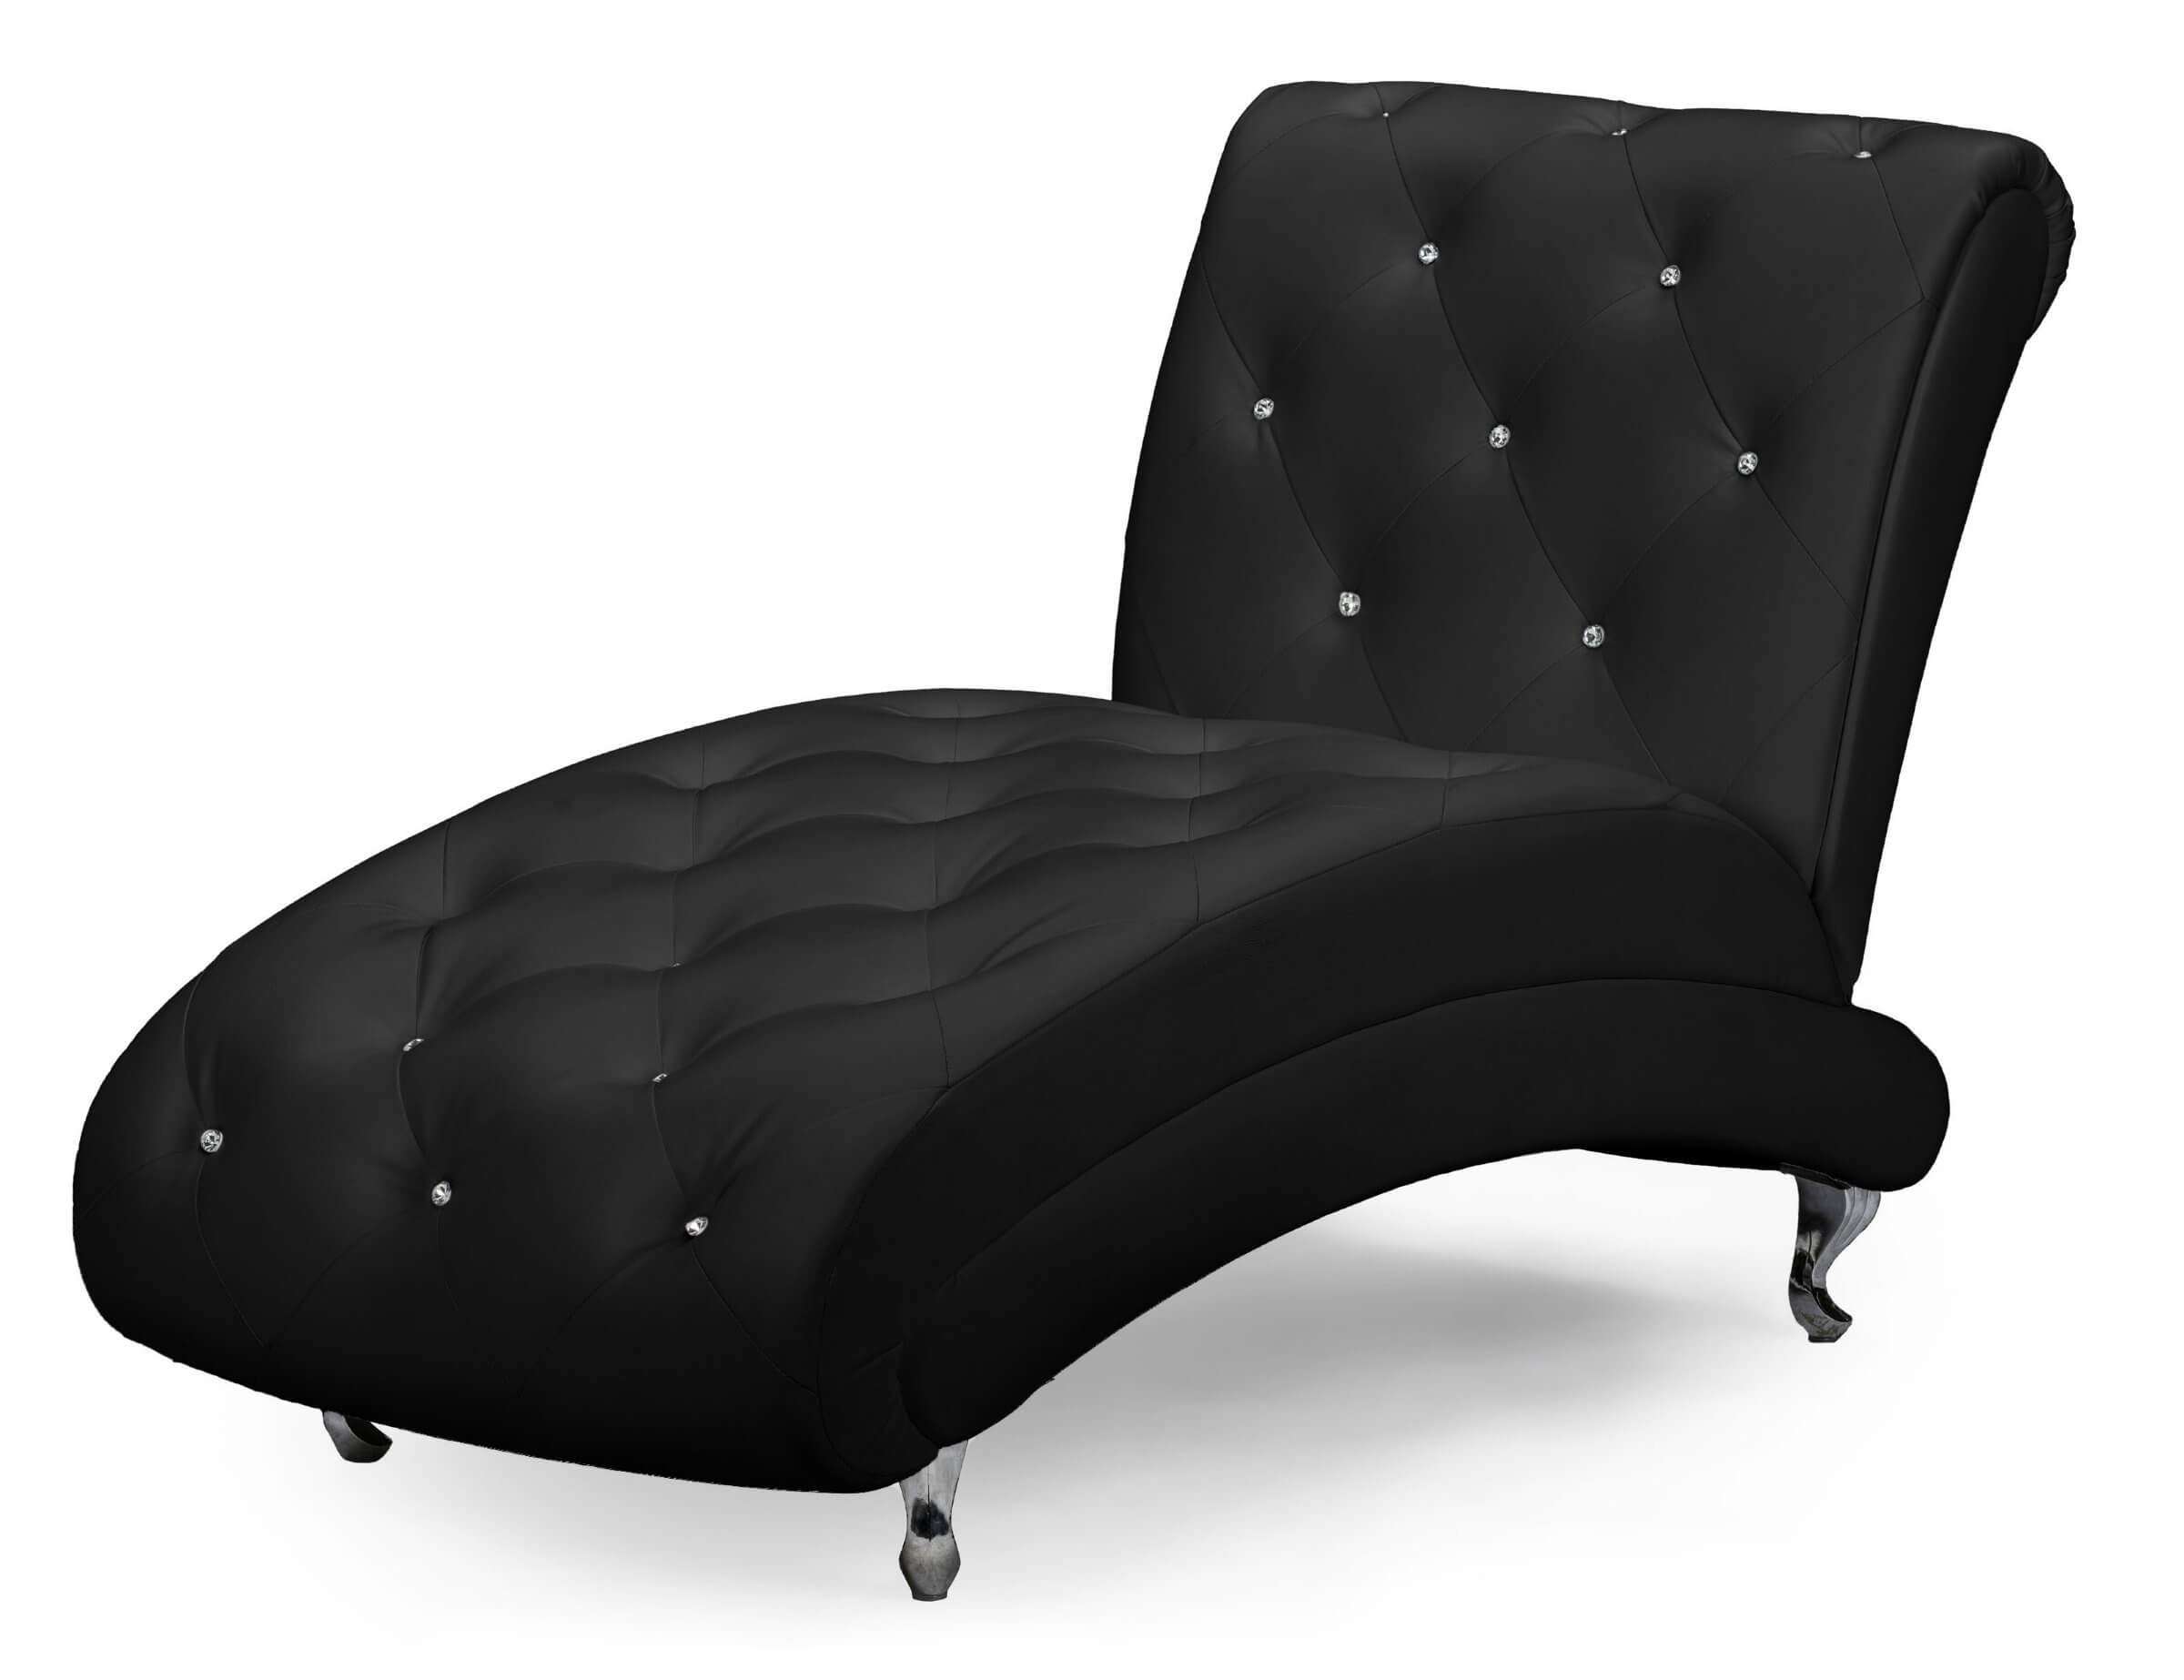 Top 20 types of black chaise lounges buying guide for Black tufted chaise lounge